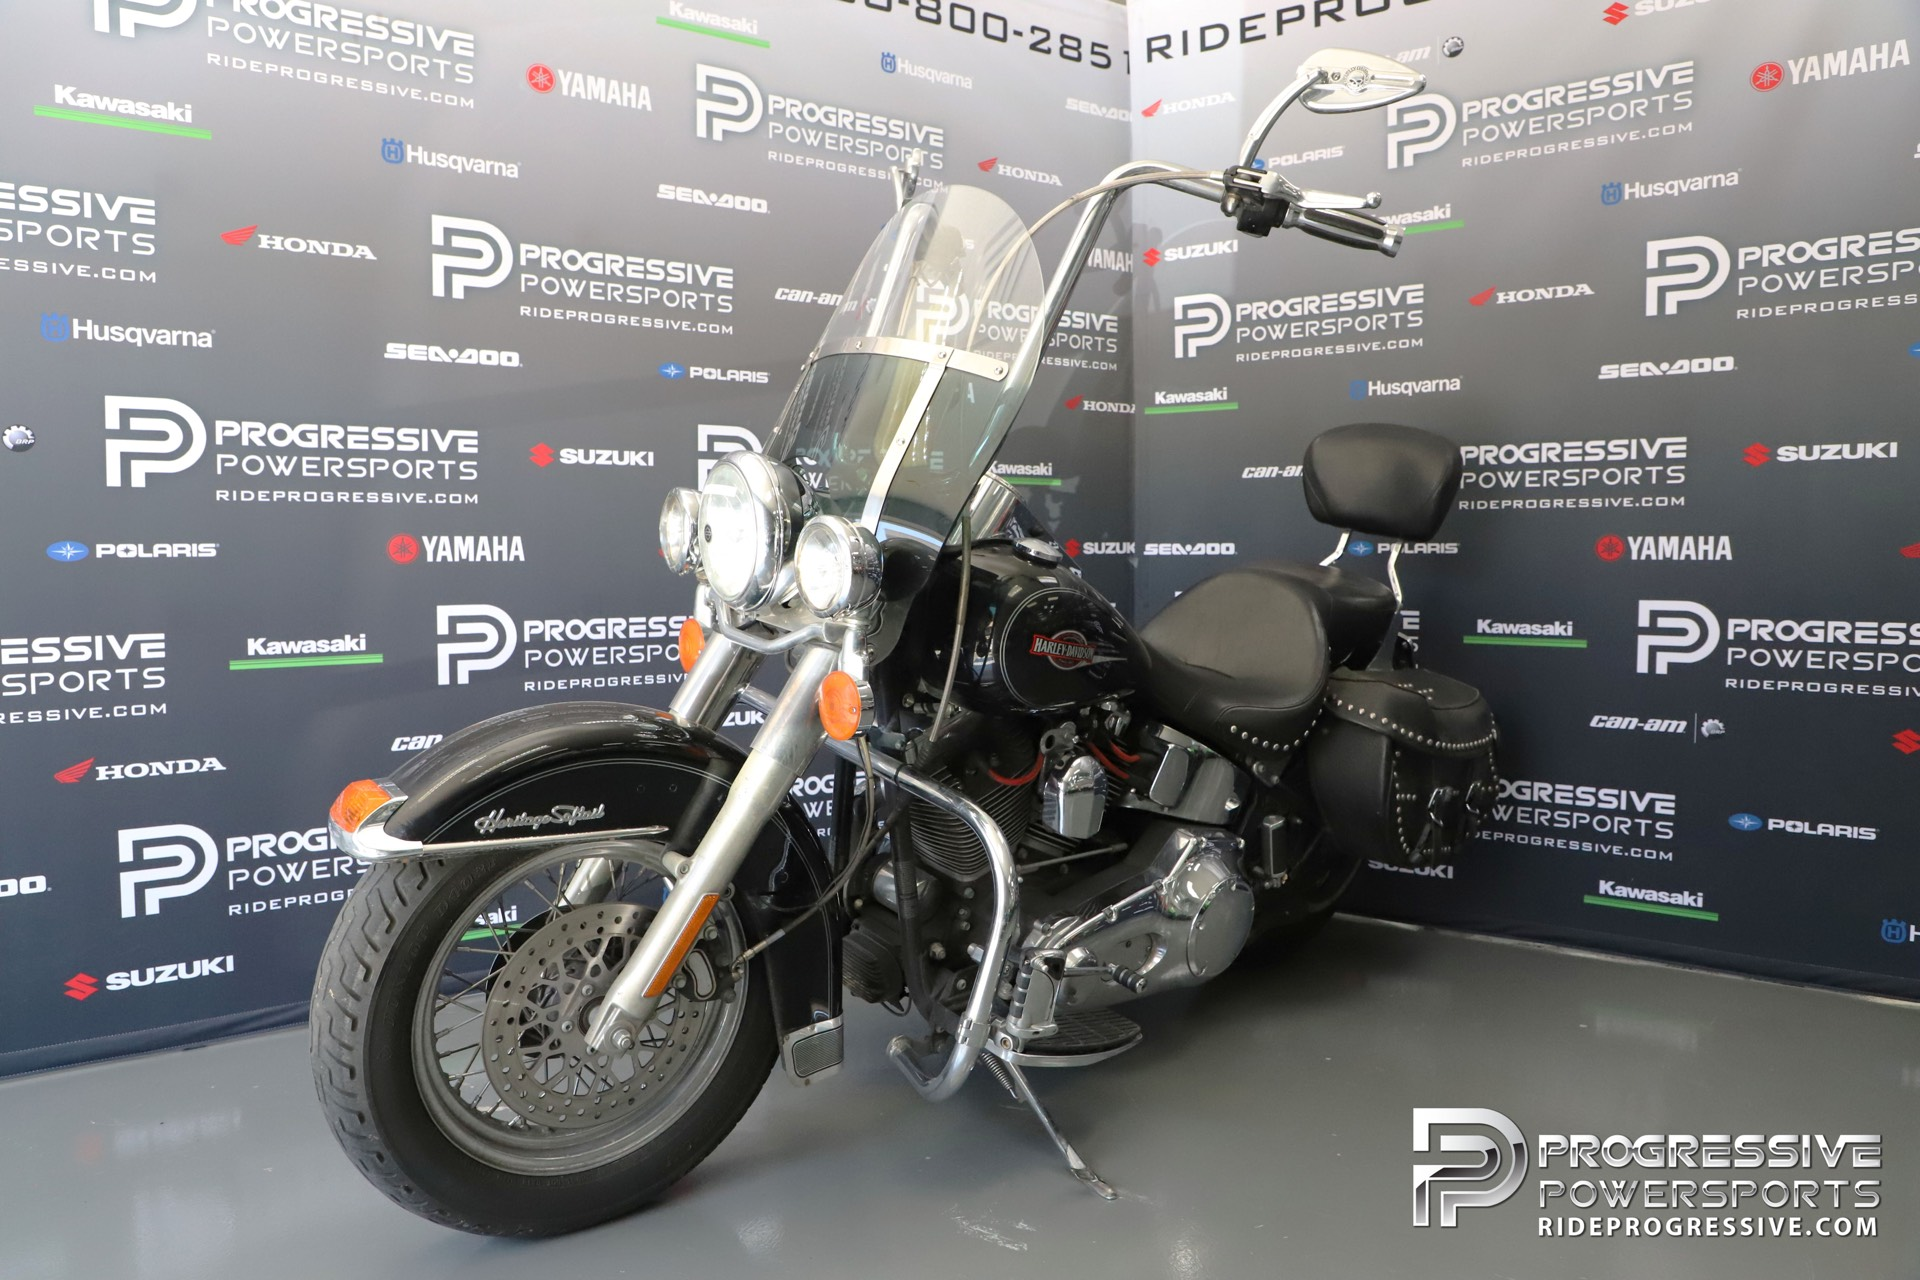 2005 Harley-Davidson HERITAGE SOFTAIL CLASSIC in Arlington, Texas - Photo 17